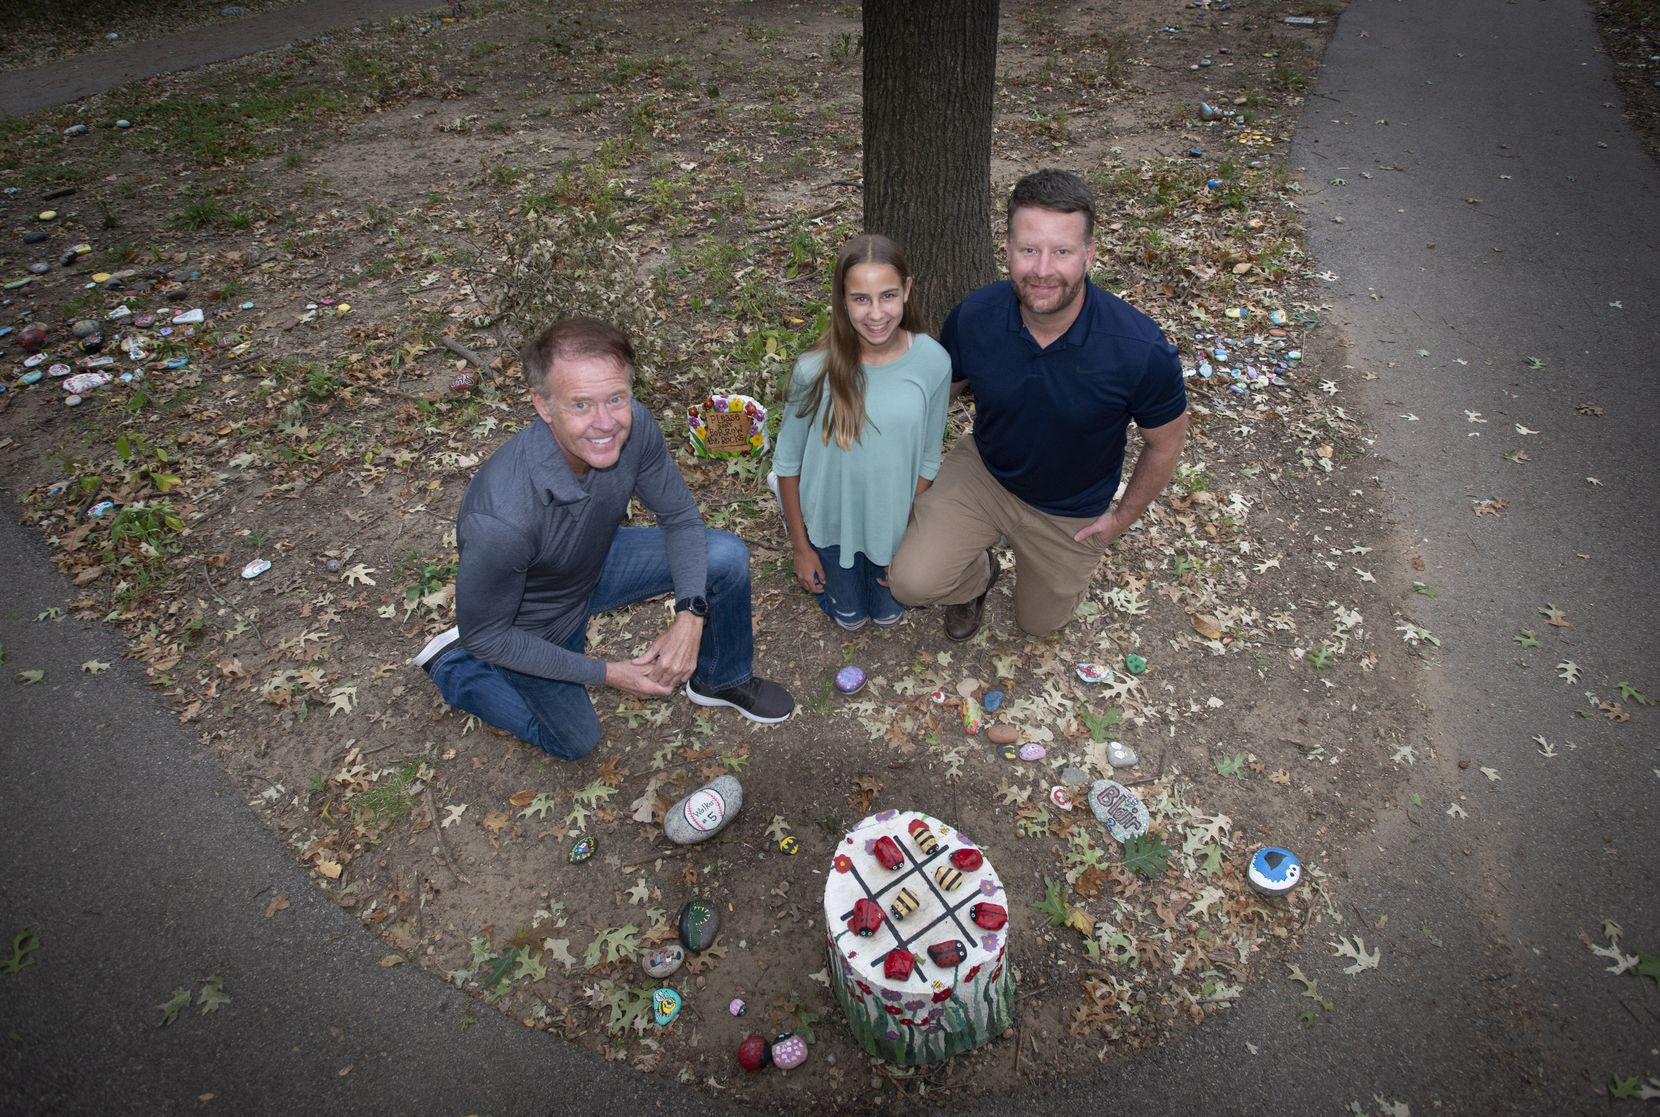 Ron Olsen, left, Sophia Penny (one of the first artists to contributer a rock) and her father Chris Penny on the rock art trail at Parr Park in Grapevine, Texas on October 15, 2020.